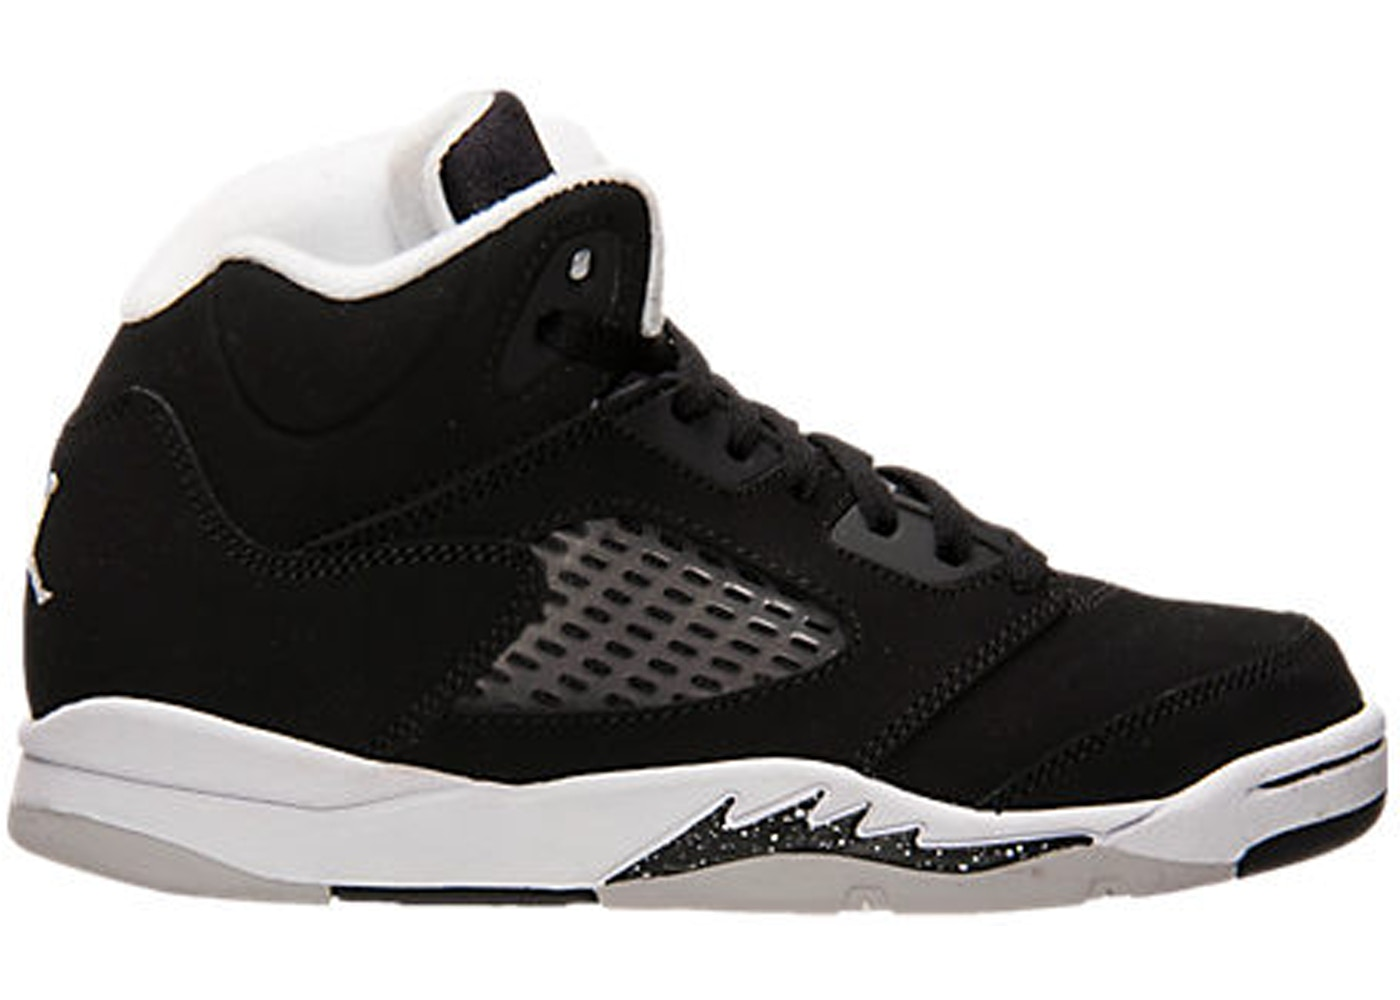 670dba39813 Sell. or Ask. Size: 12.5. View All Bids. Jordan 5 Retro Oreo ...